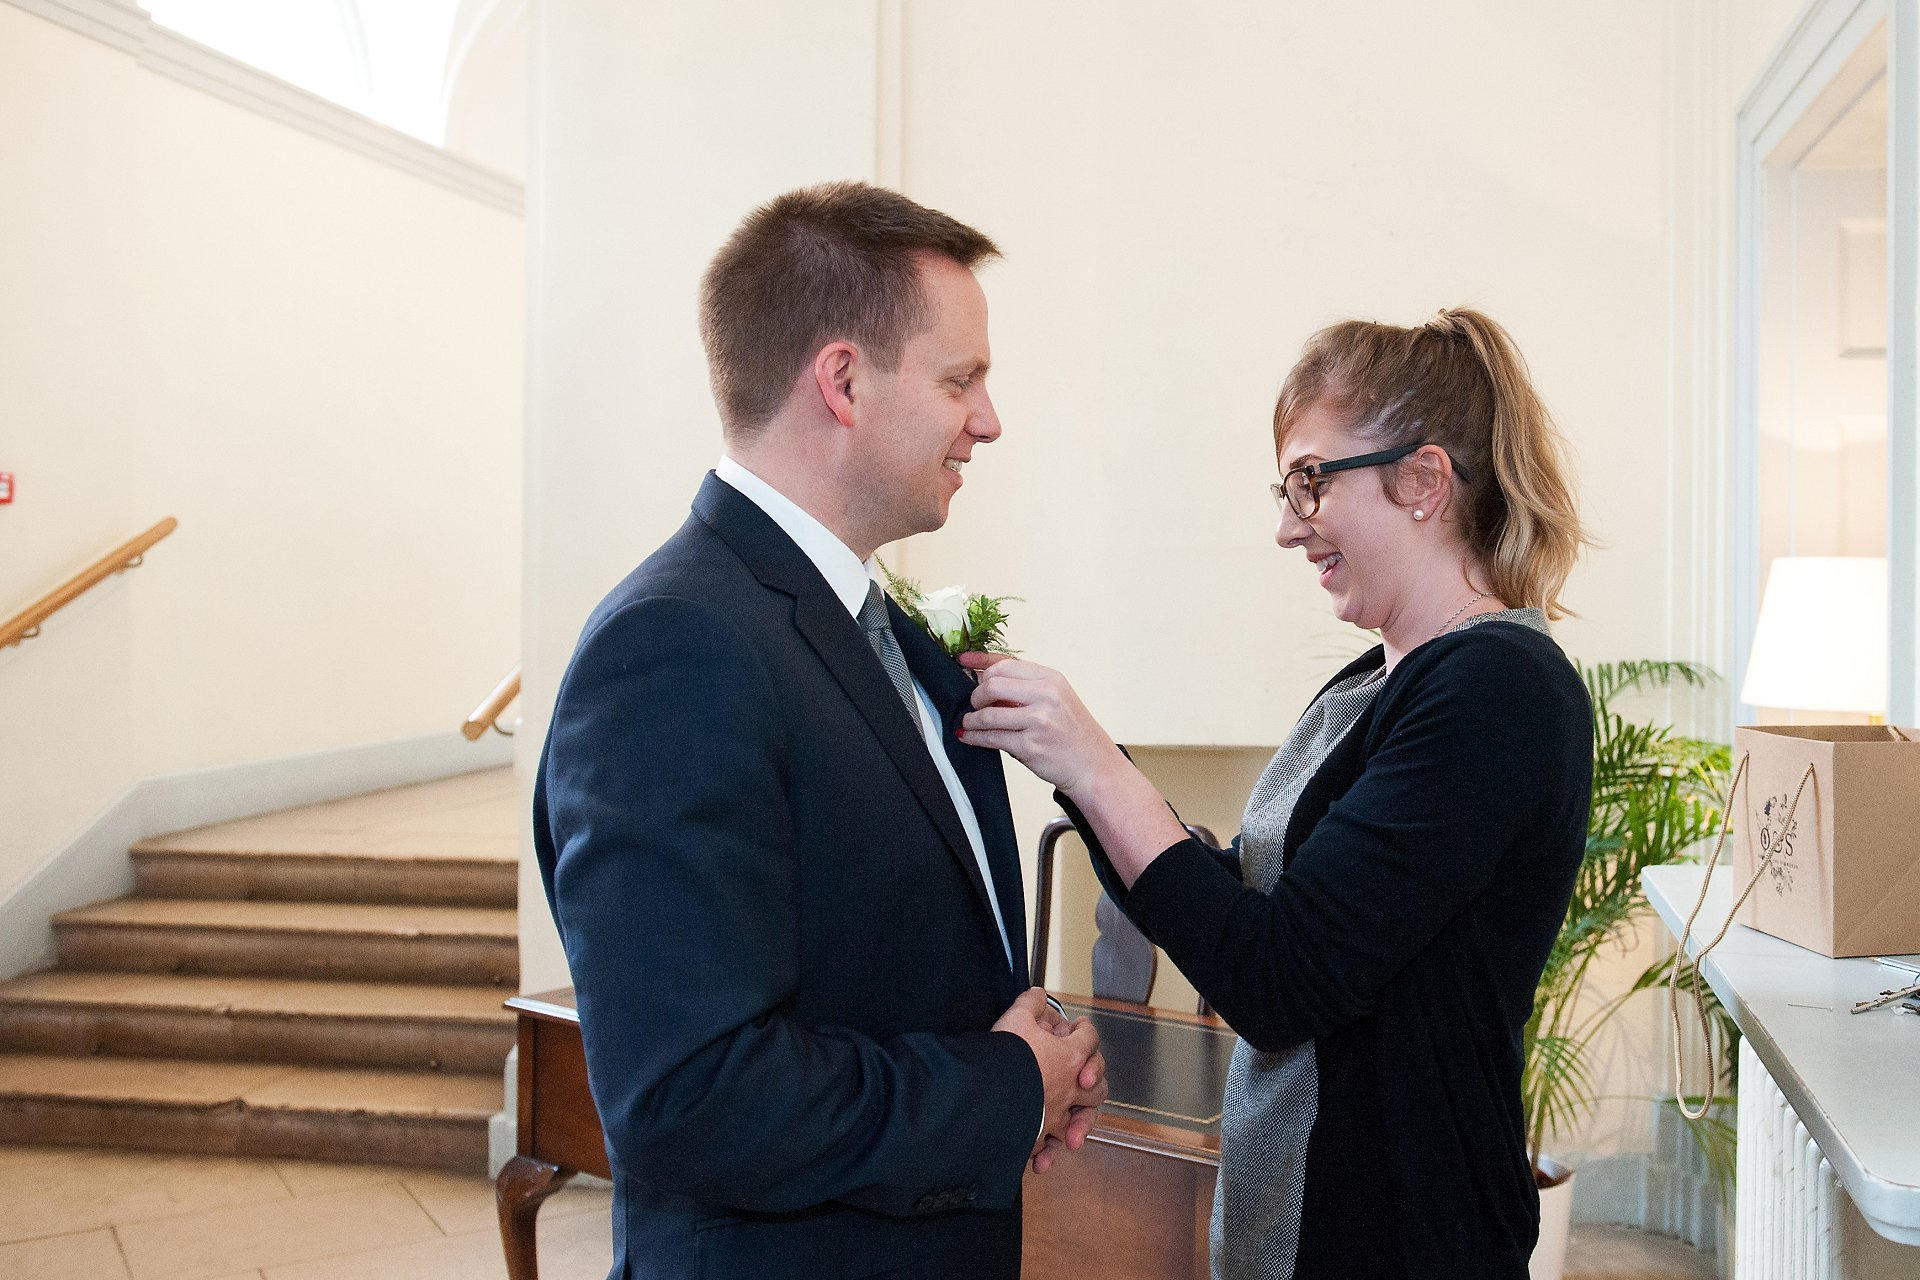 A wedding coordinator at Fulham Palace pins the button hole flower onto the Groom before his civil wedding ceremony